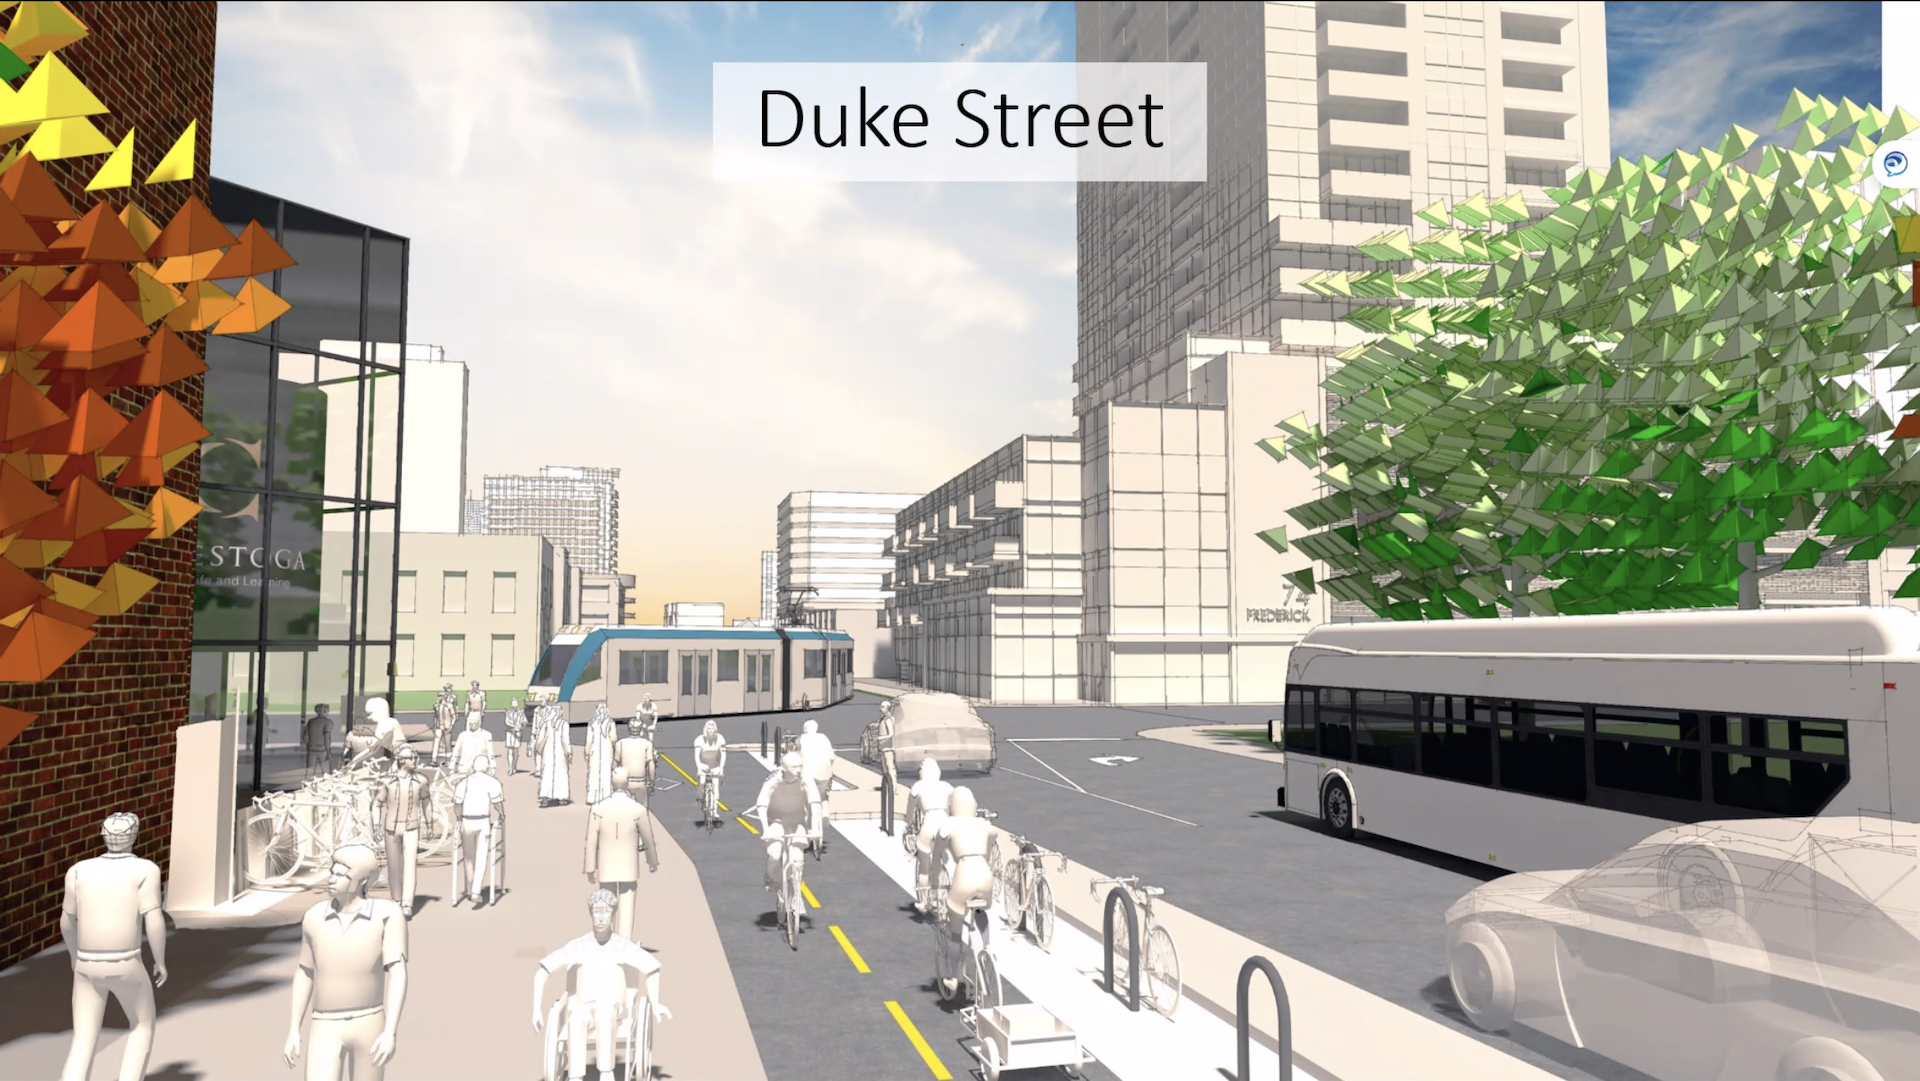 A drawing of what Duke Street in Kitchener could look like with separate cycle lanes, floating bike racks, public transit, pedestrians, and a car.